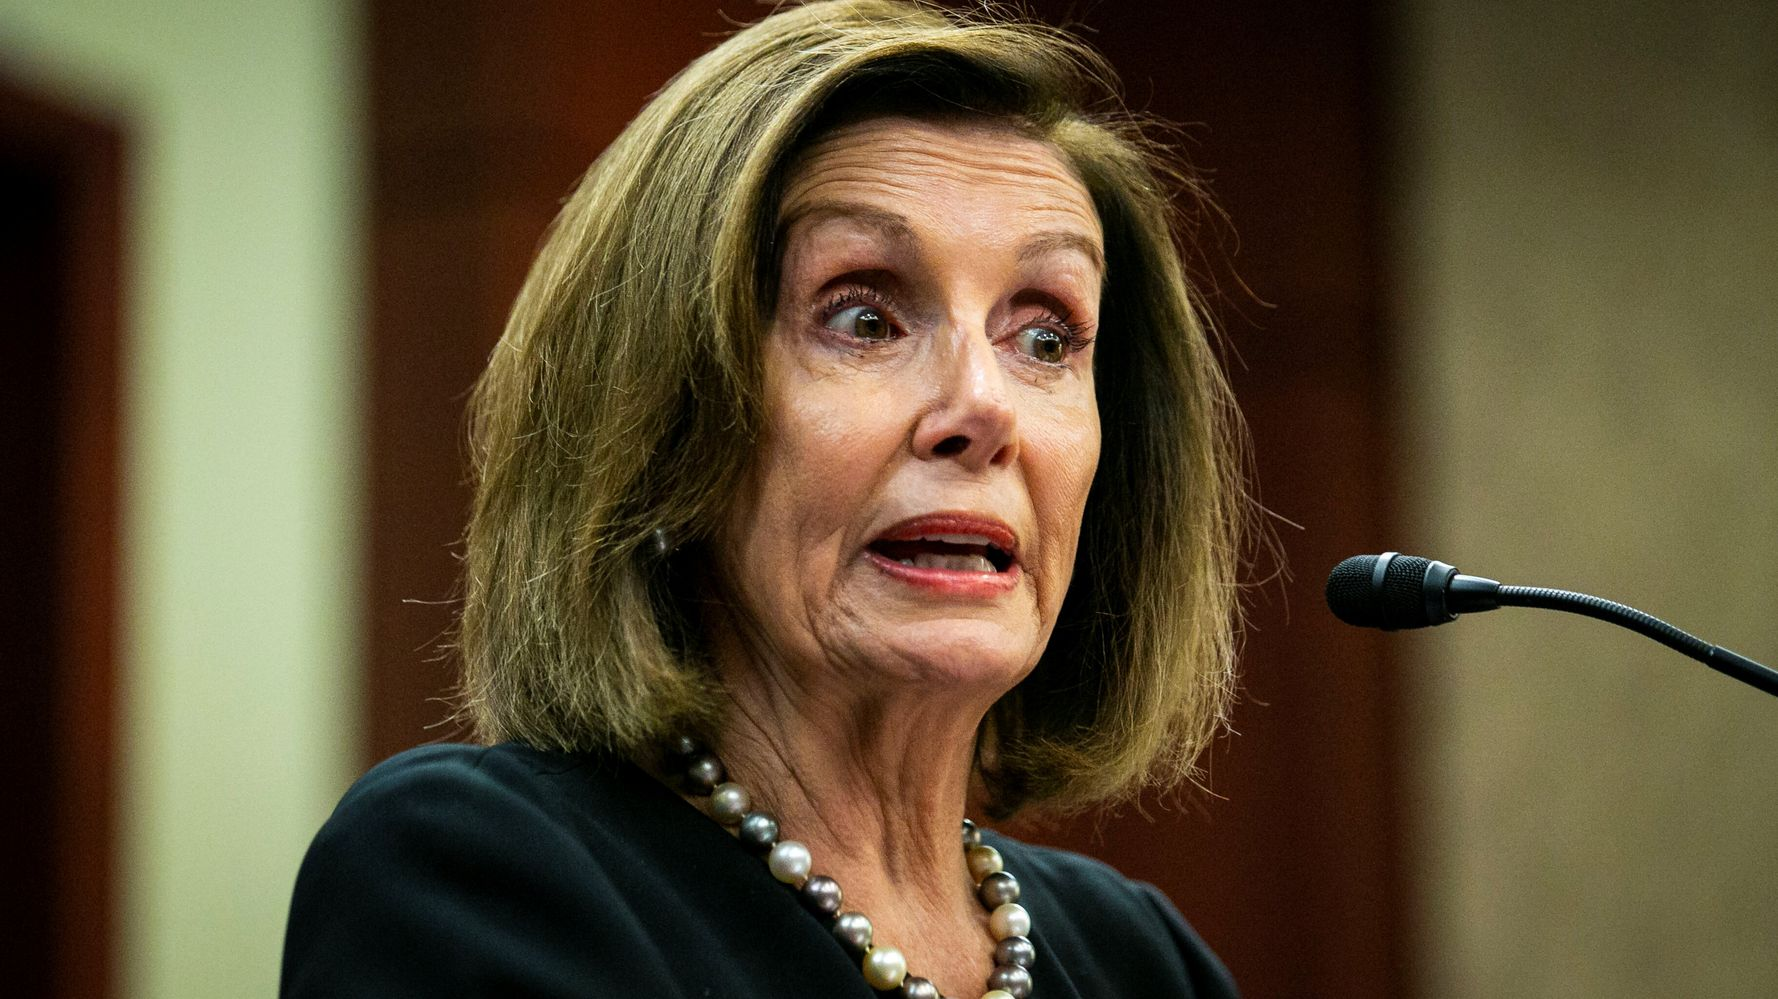 Westlake Legal Group 5d9024382100003700fd4064 Nancy Pelosi Says Public Opinion Shifting In Support Of Impeachment Inquiry